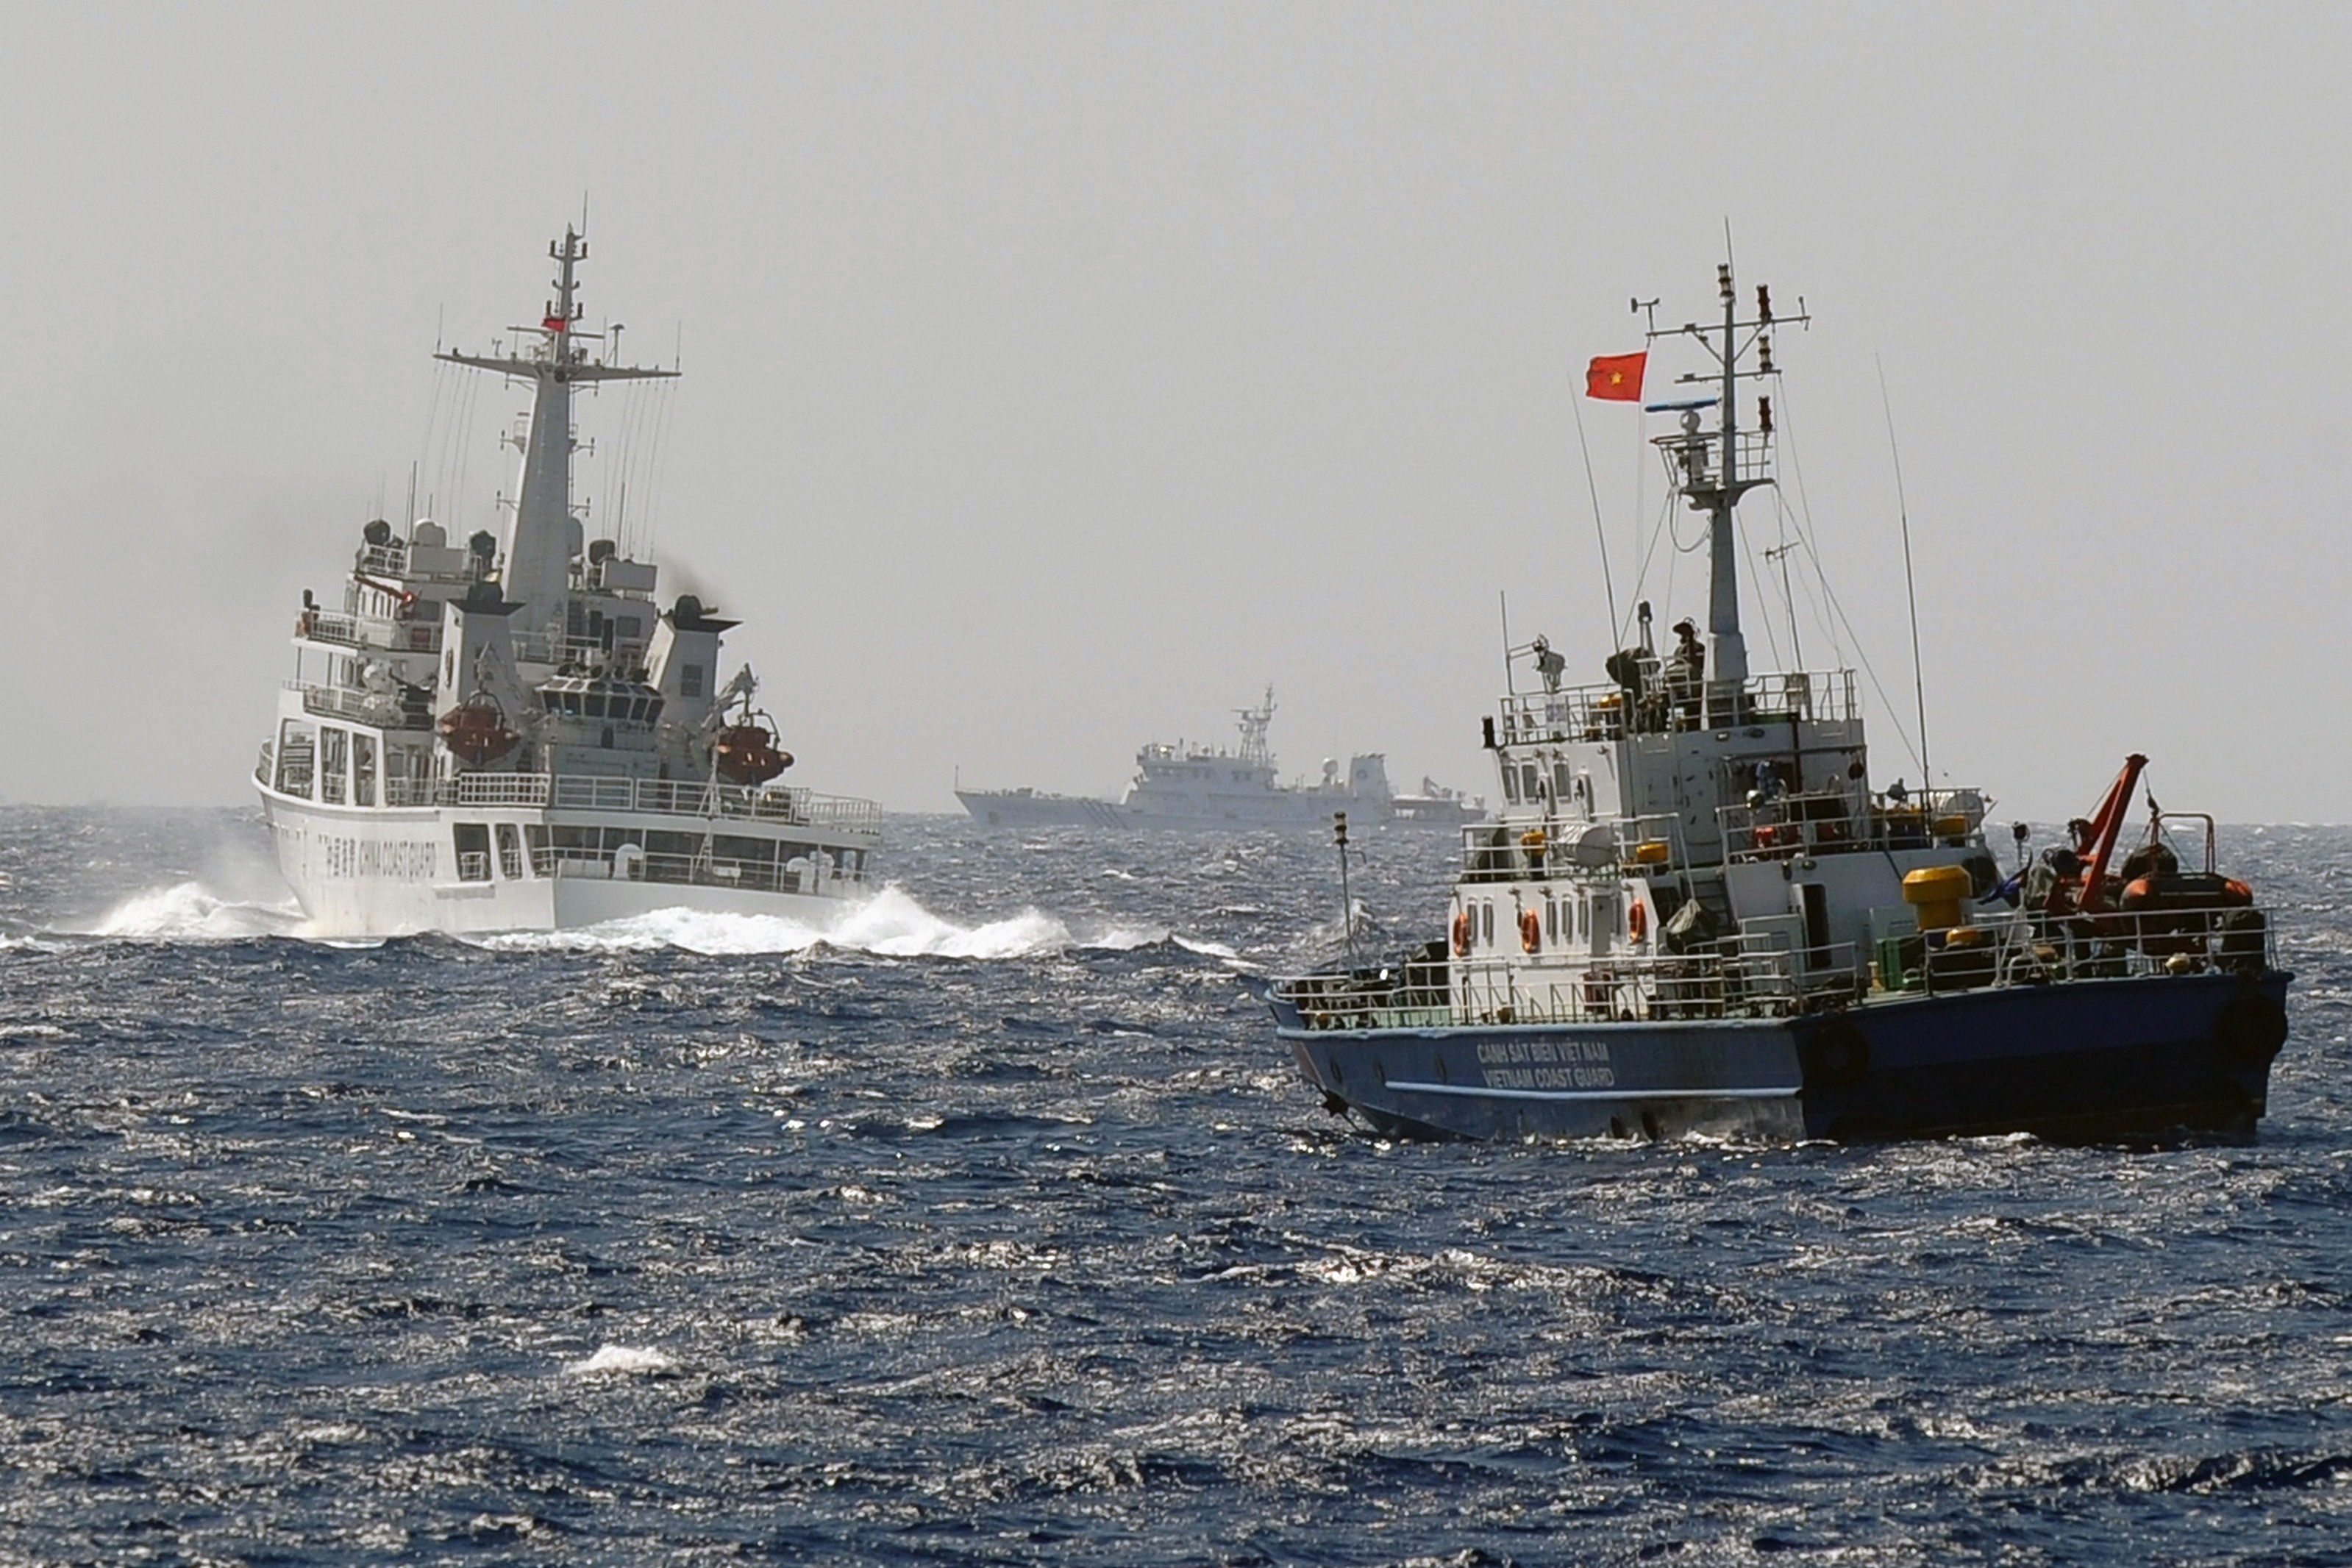 Vietnam, China Embroiled in South China Sea Standoff